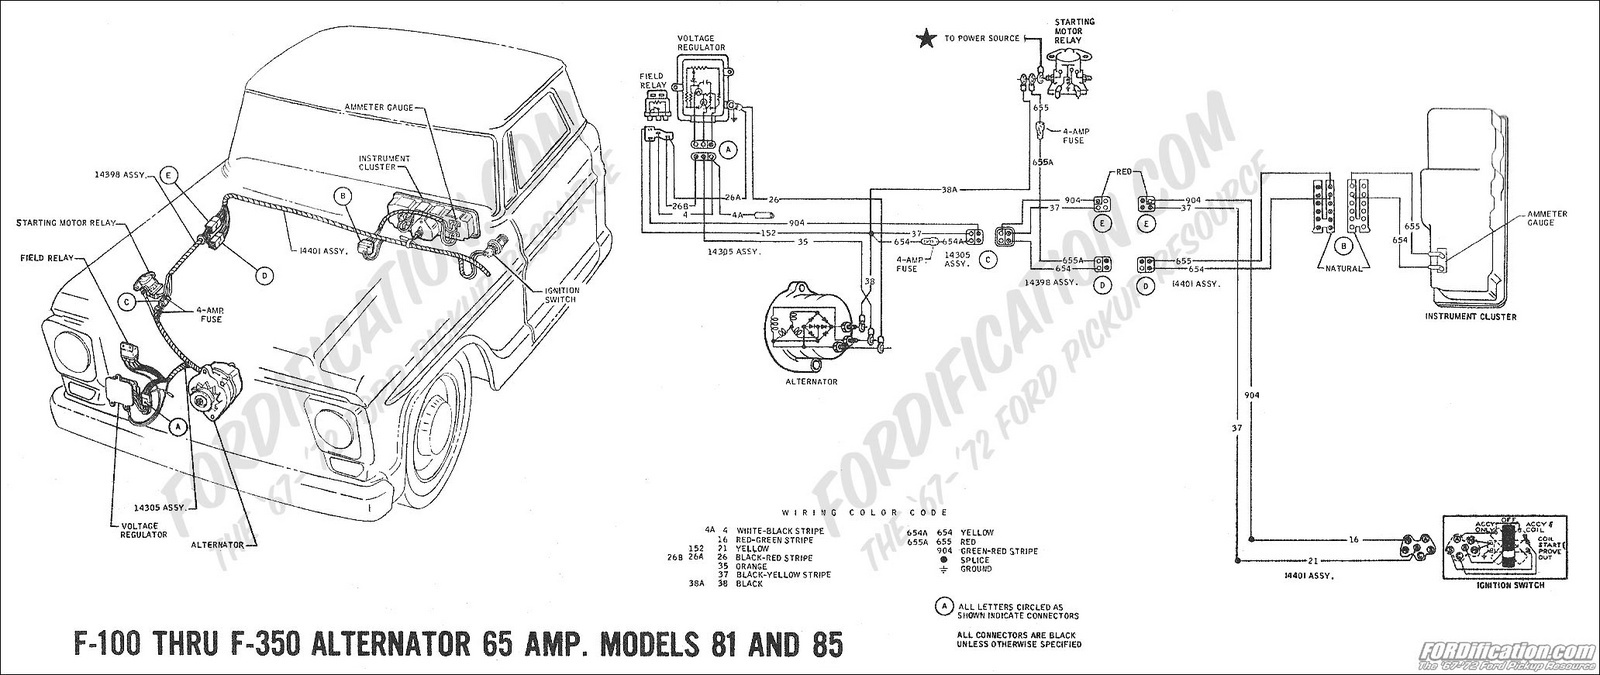 Discussion C13911_ds652668 on 1978 Ford Pickup Wiring Diagram